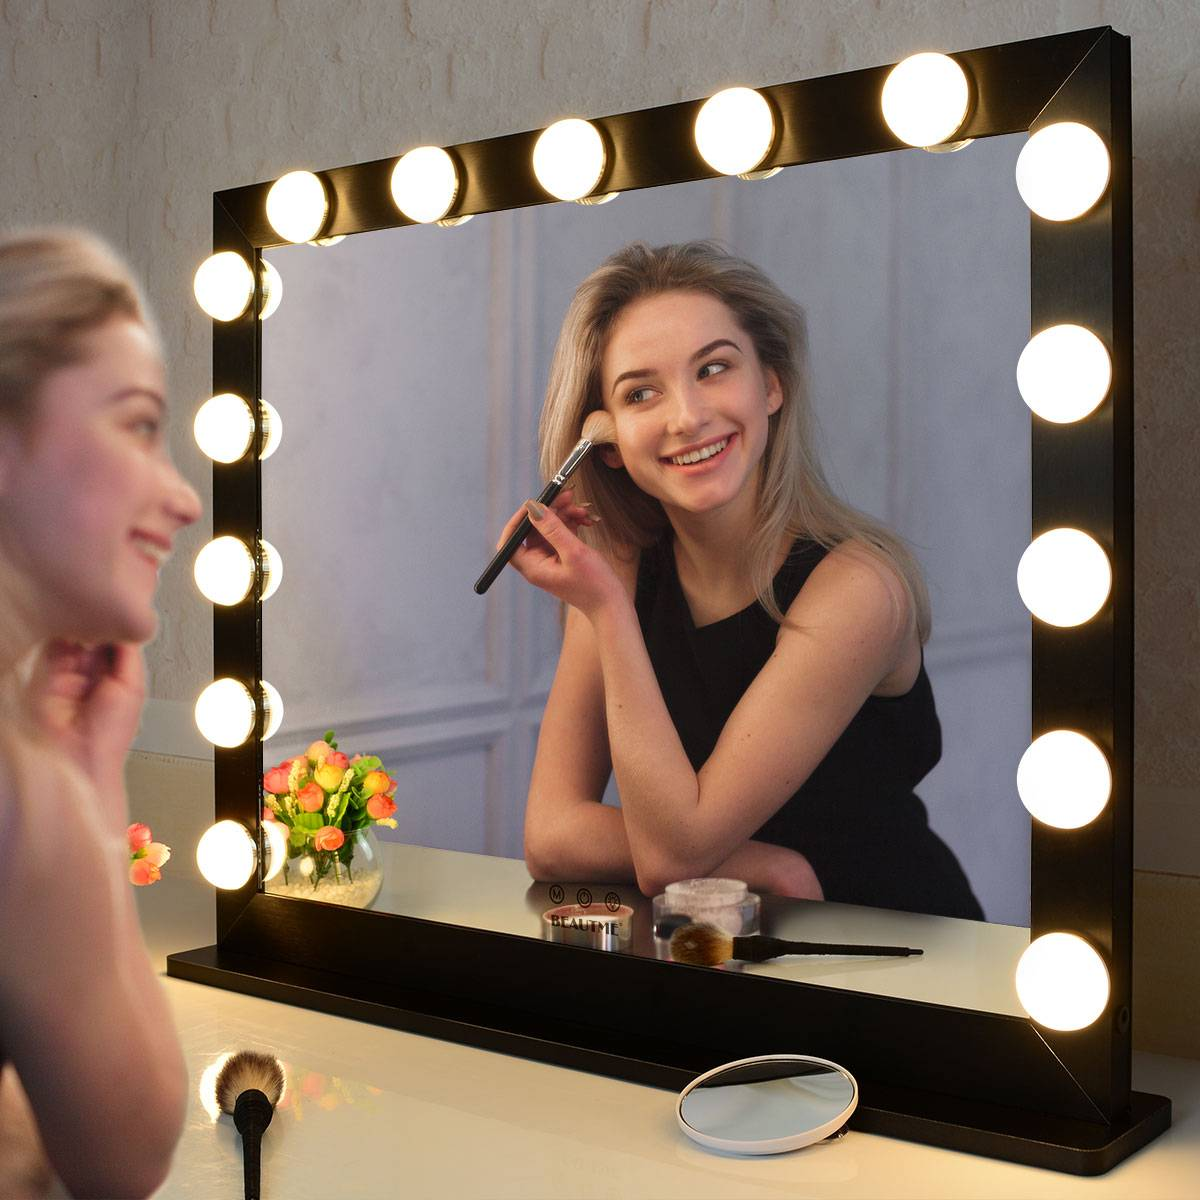 Vanity Mirror with Lights,Hollywood Lighted LED Mirror with Dimmer Bulbs,Tabletop or Wall Mounted Vanity Makeup Mirror Smart Touch Control (27.5/21.73″ Silver) Featured Image